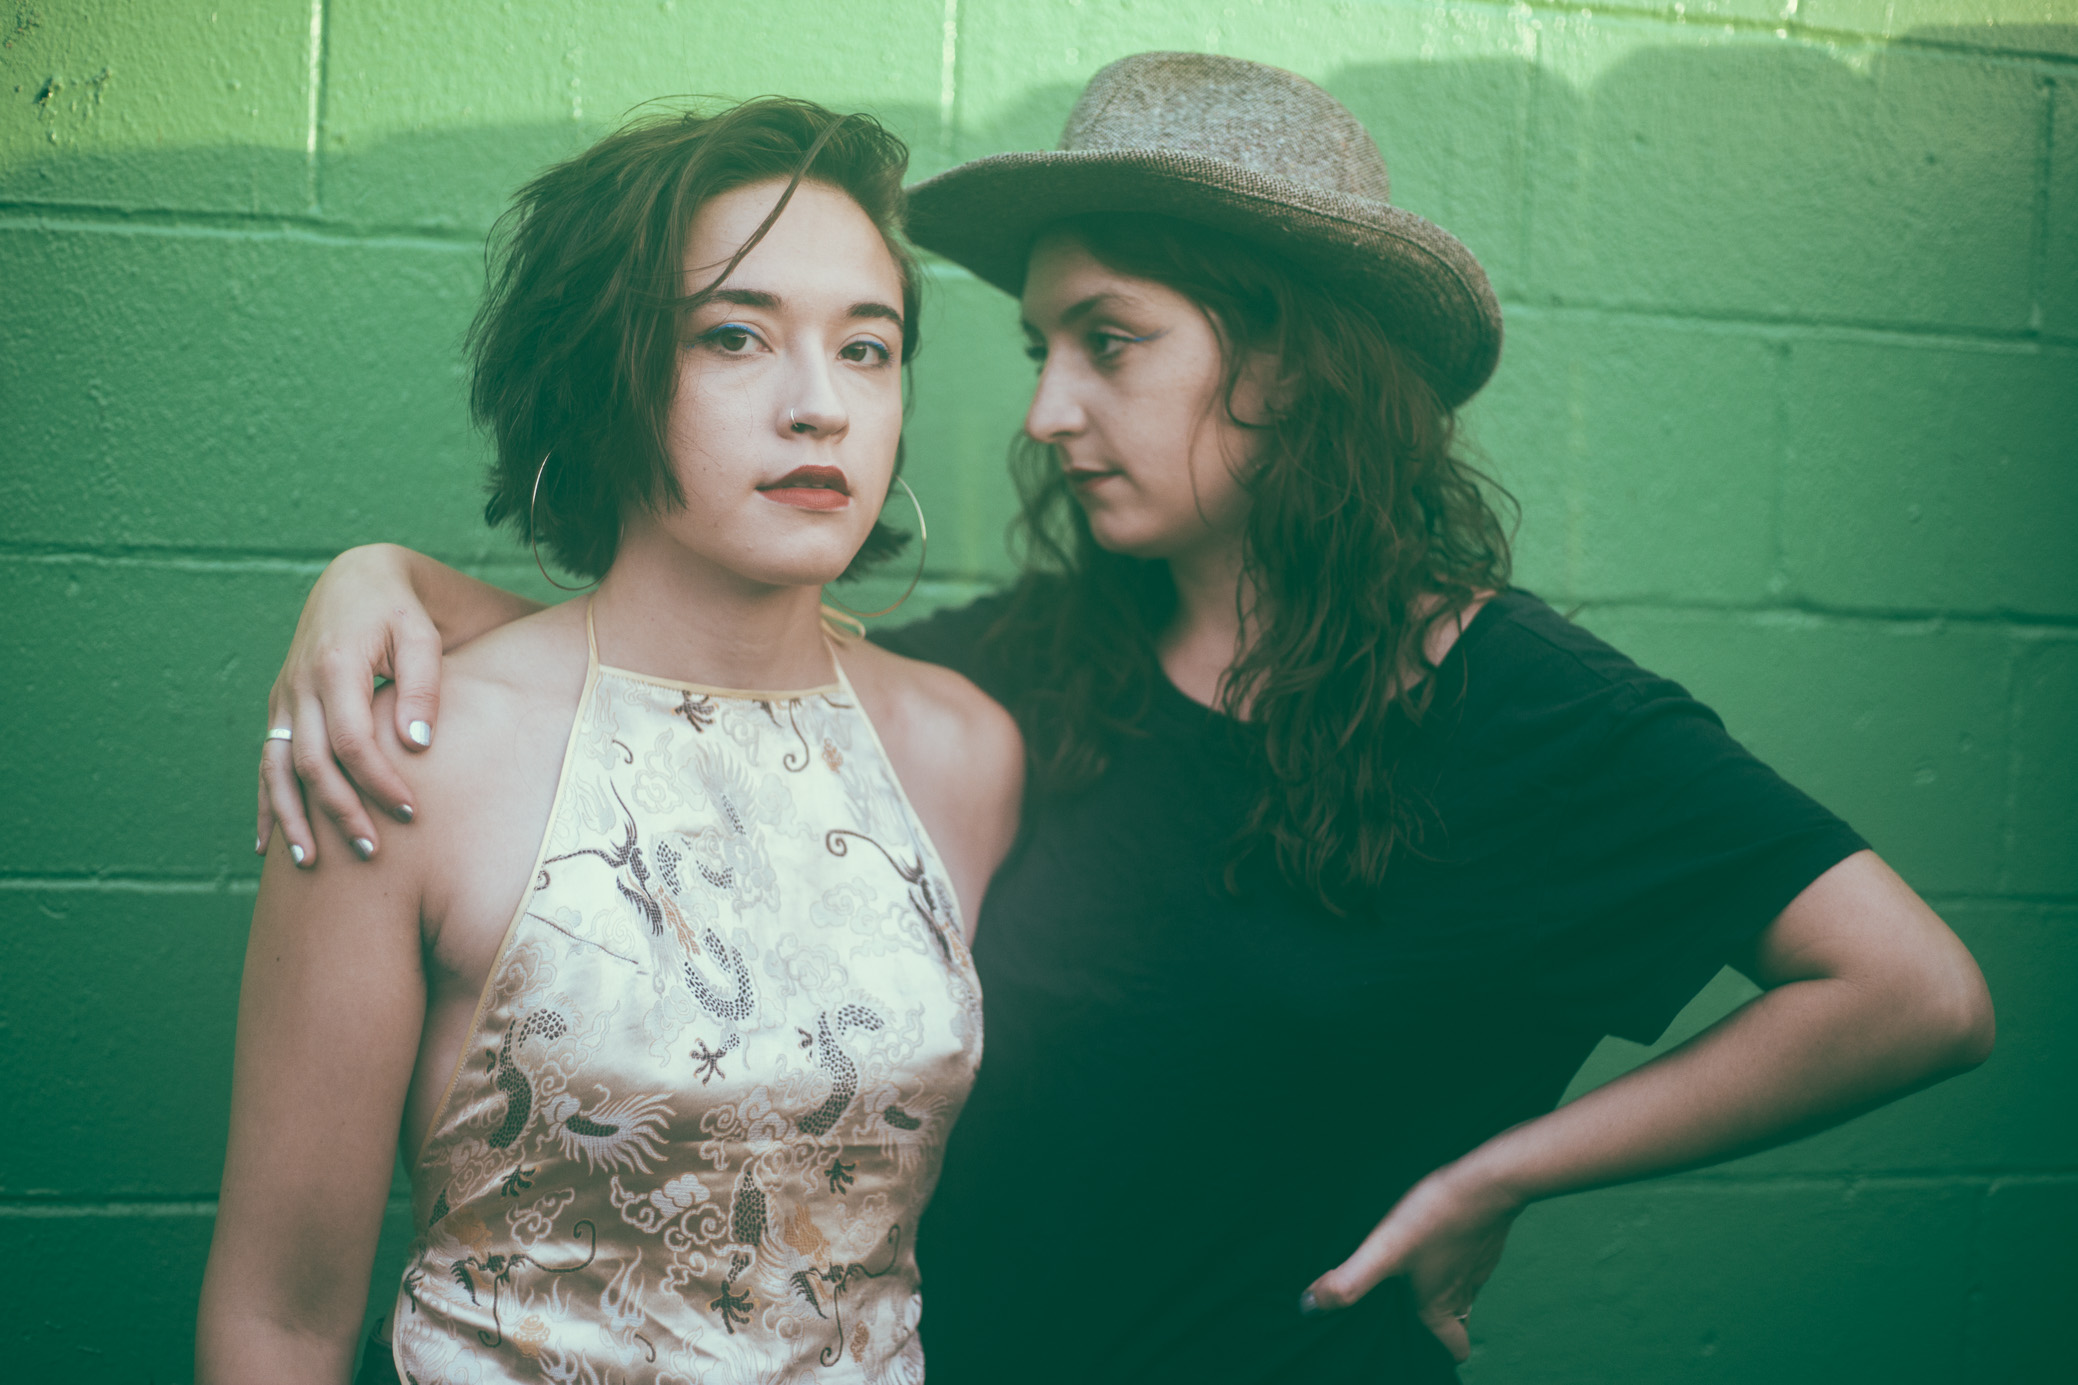 Macie Stewart and Sima Cunningham of OHMME pose before their concert at The Spring Street Firehouse in Birmingham, Alabama on September 5th, 2018. (Photo by David A. Smith/DSmithScenes)